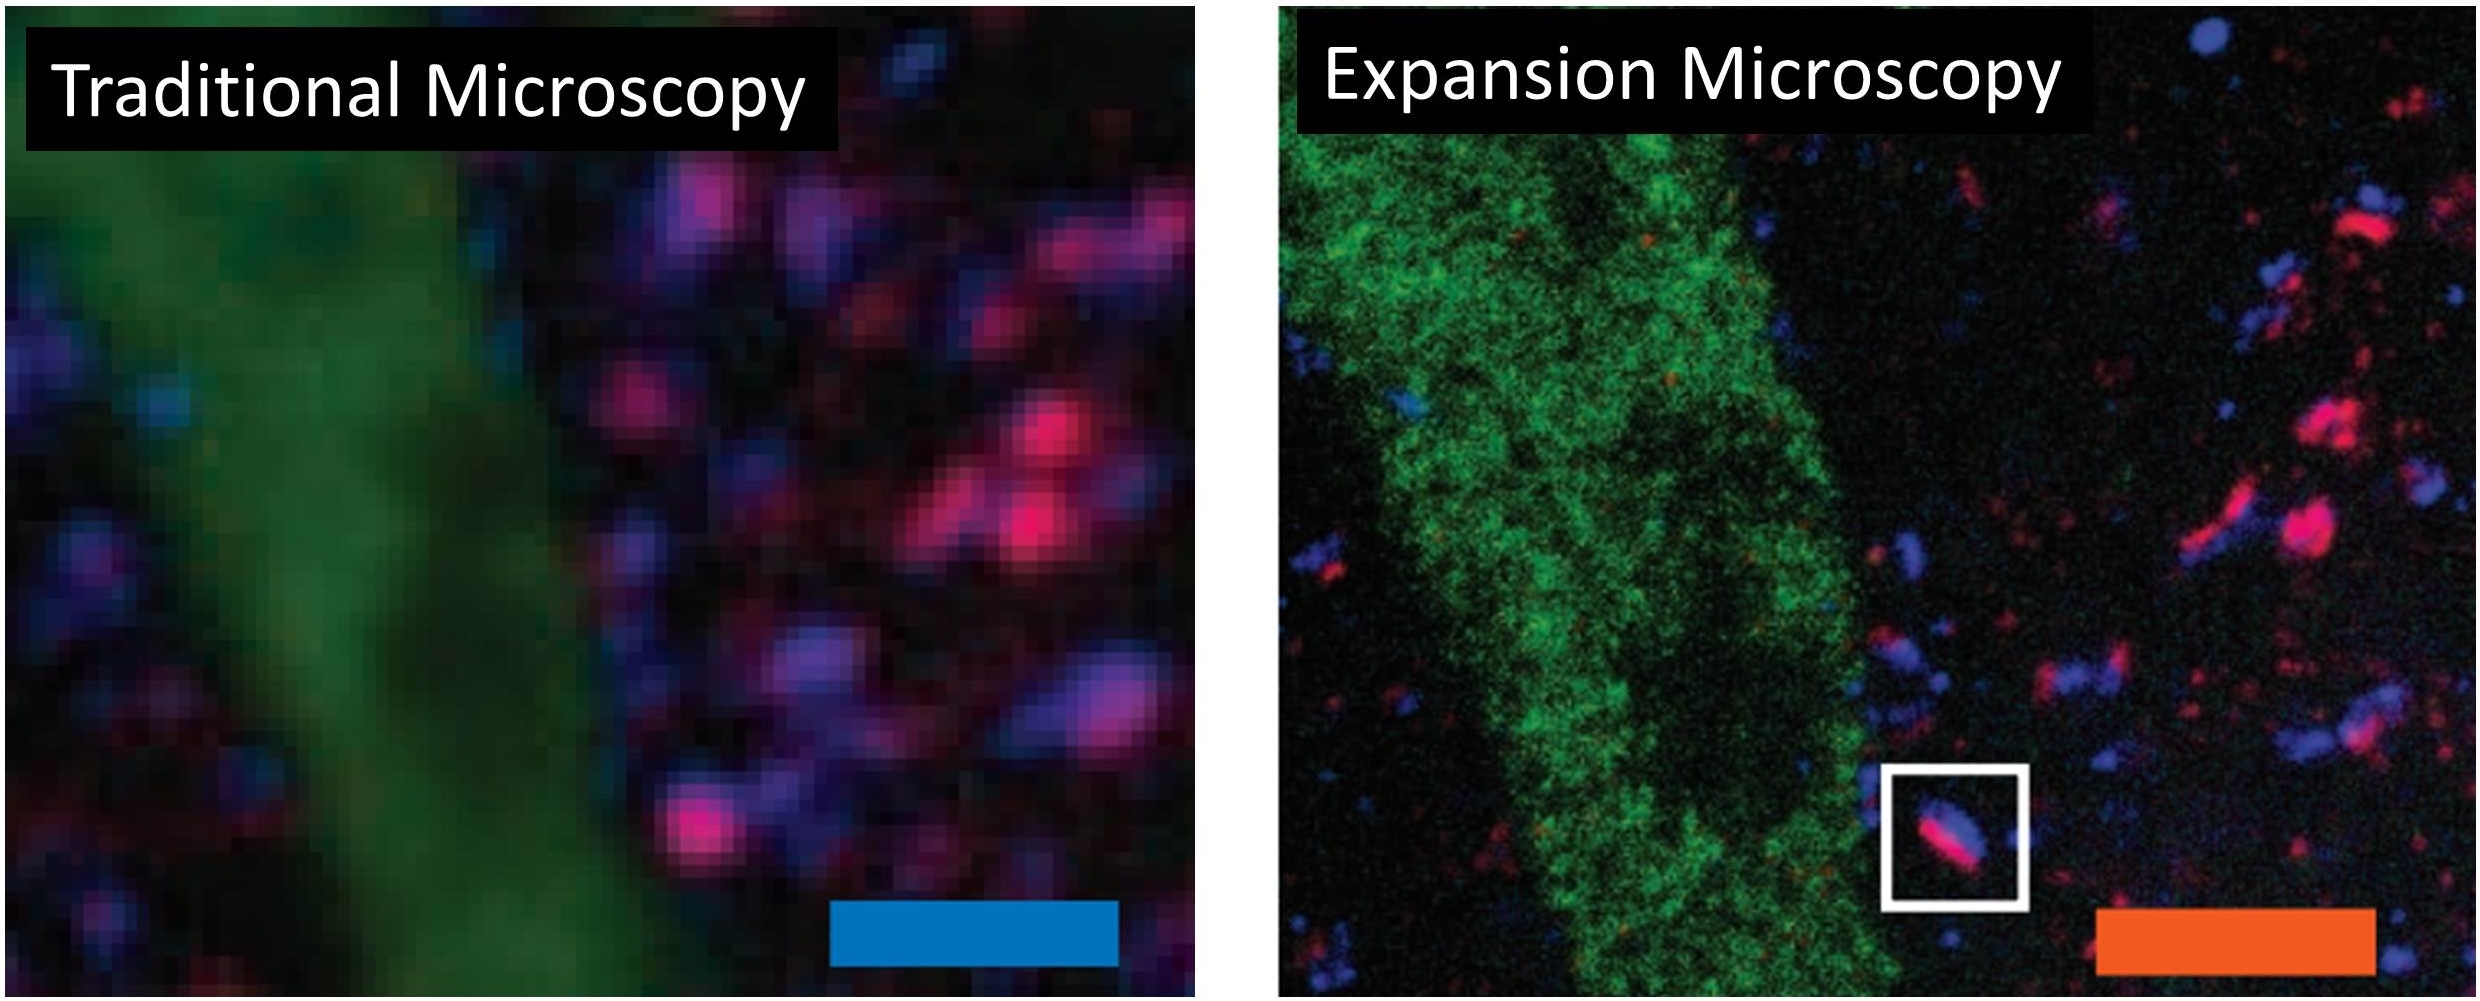 Diaper Compound Brings Change to Cell Microscopy